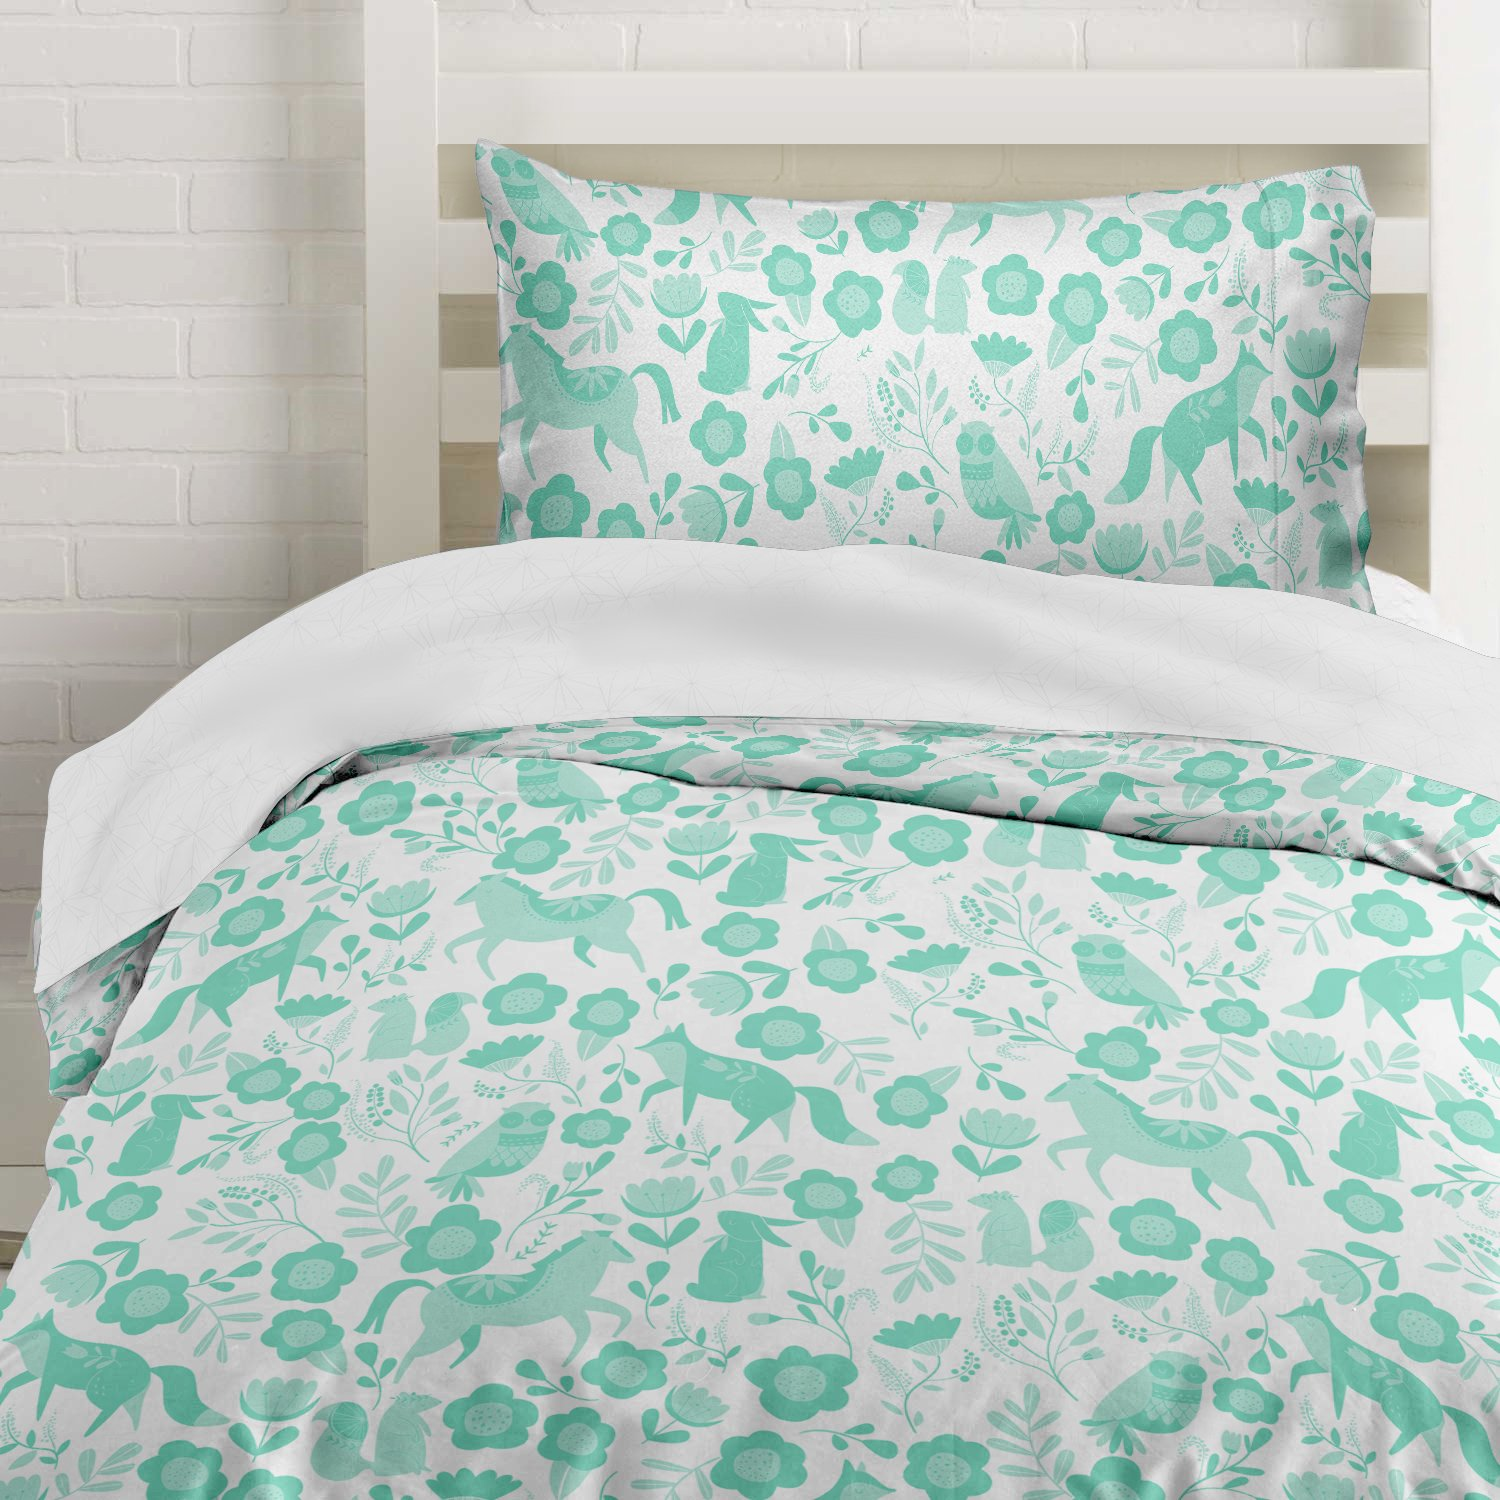 Where The Polka Dots Roam Seafoam Green Folktale Forest Animals Duvet Cover Twin Size Bedding, White and Teal Woodland Creatures